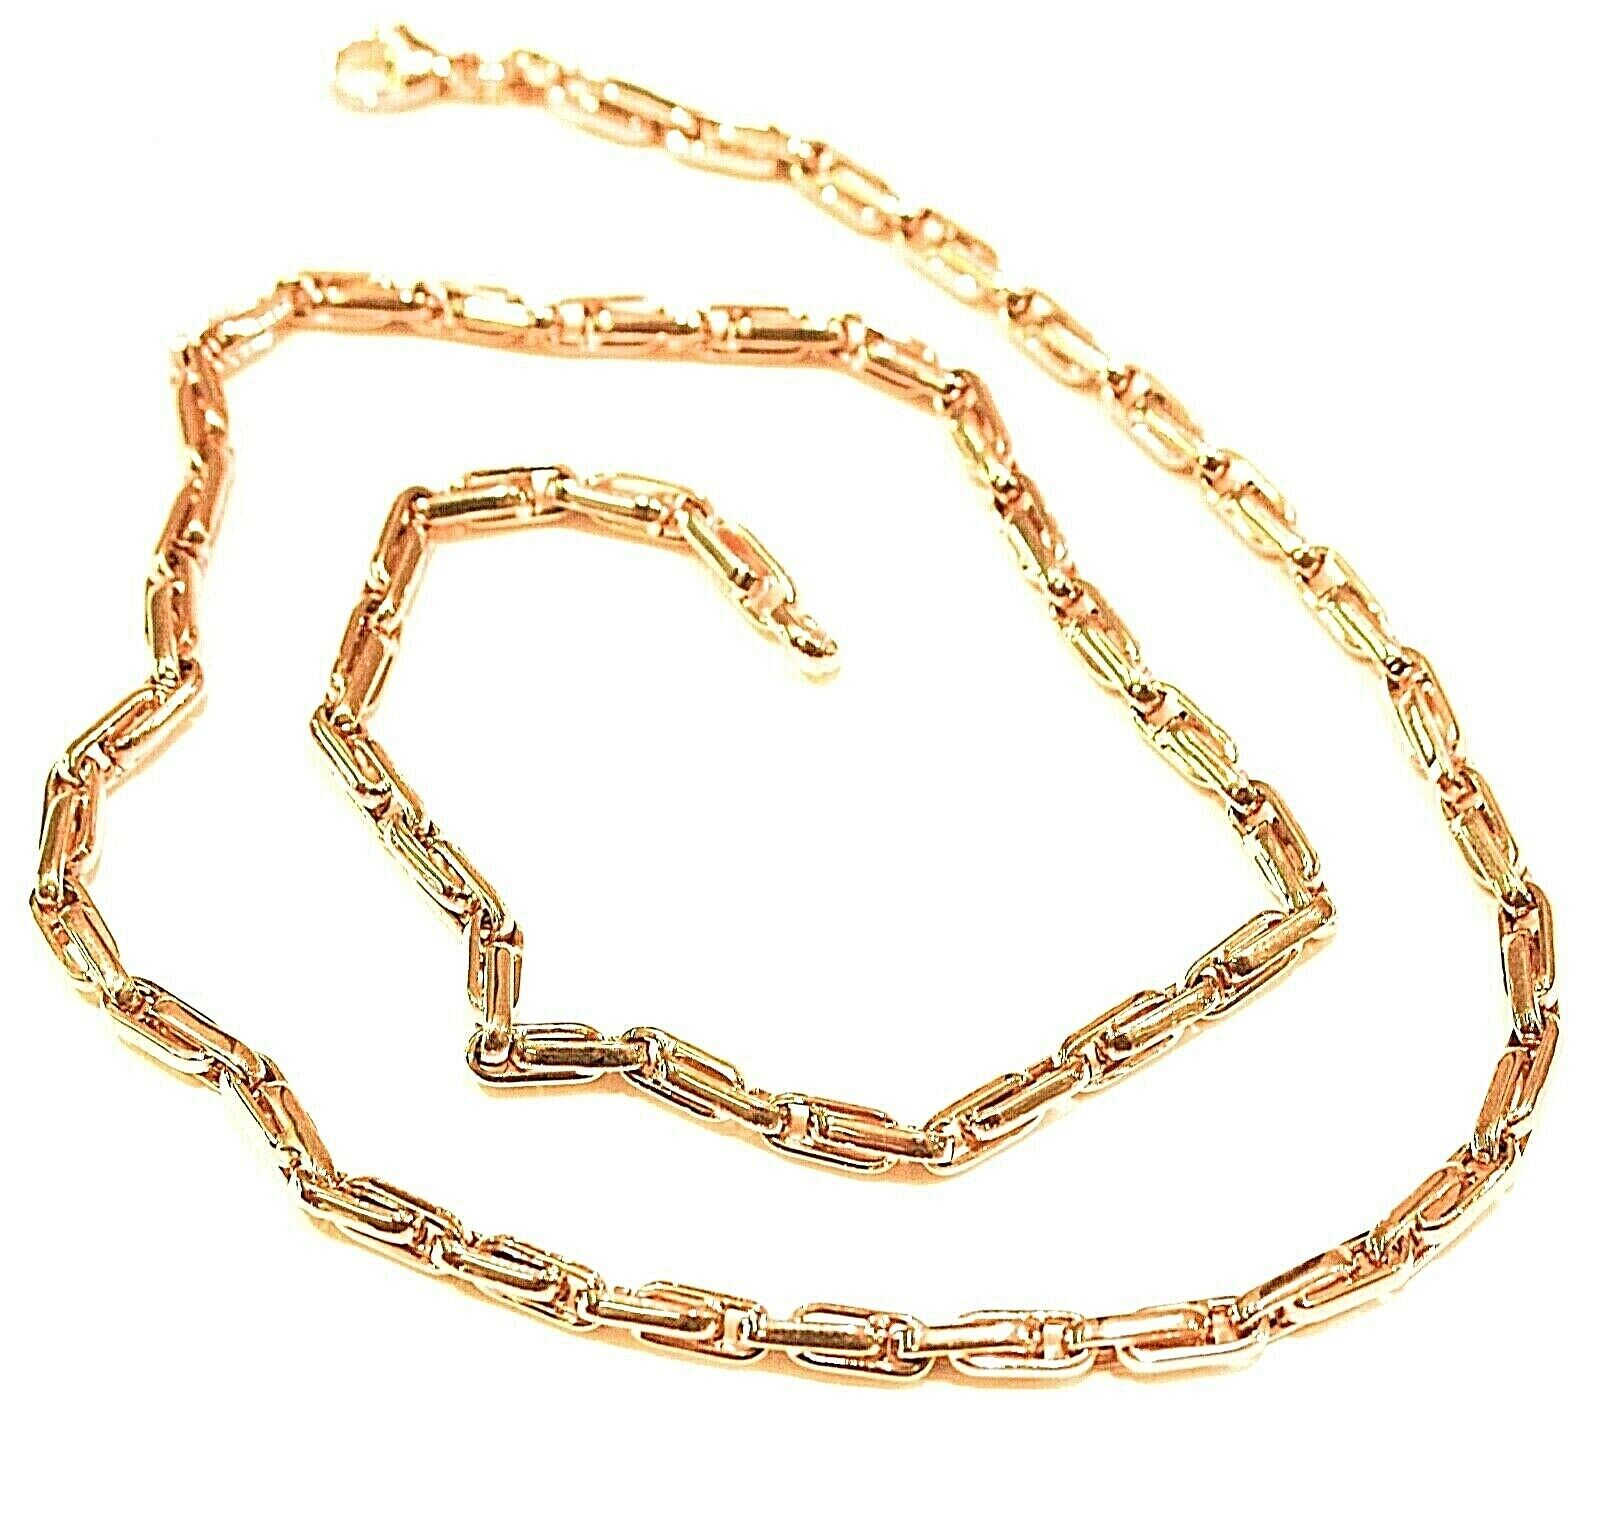 18K YELLOW GOLD CHAIN ALTERNATE OVALS 4 MM, 24 INCHES, SQUARED TUBE NECKLACE